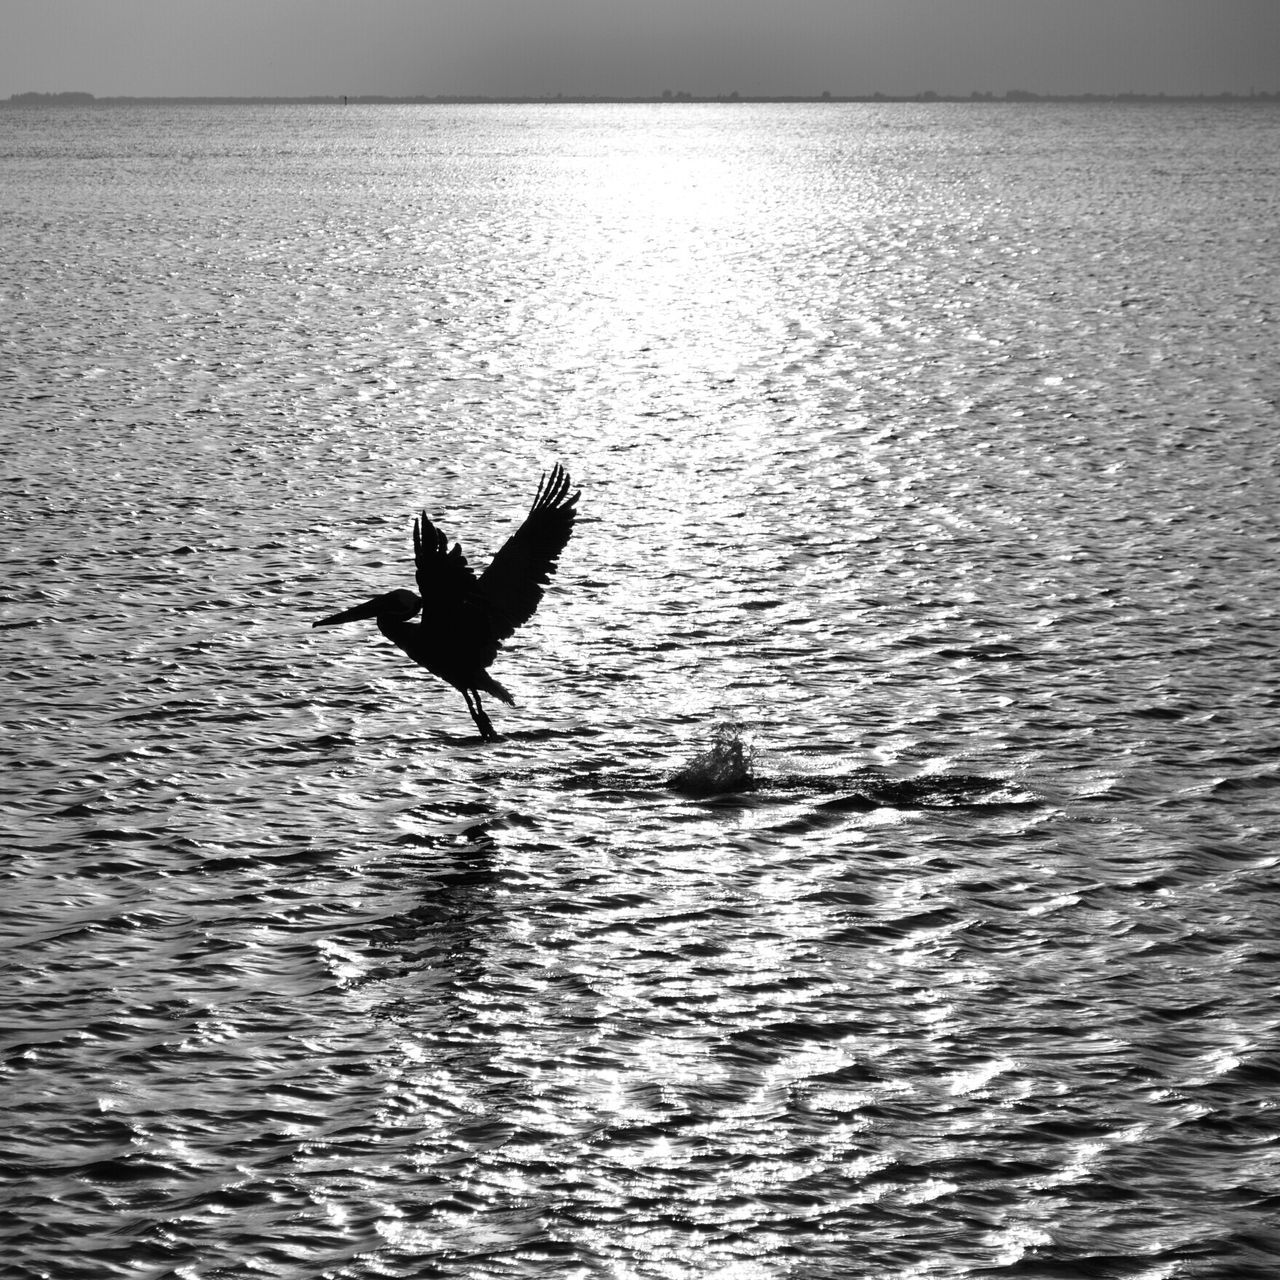 Water Reflections Silhouette Swfl United States Florida Wildlife & Nature Bird Photography Pelican Dance Black And White Bird In Flight One Animal Photography In Motion Nature No People Outdoors Water Black & White